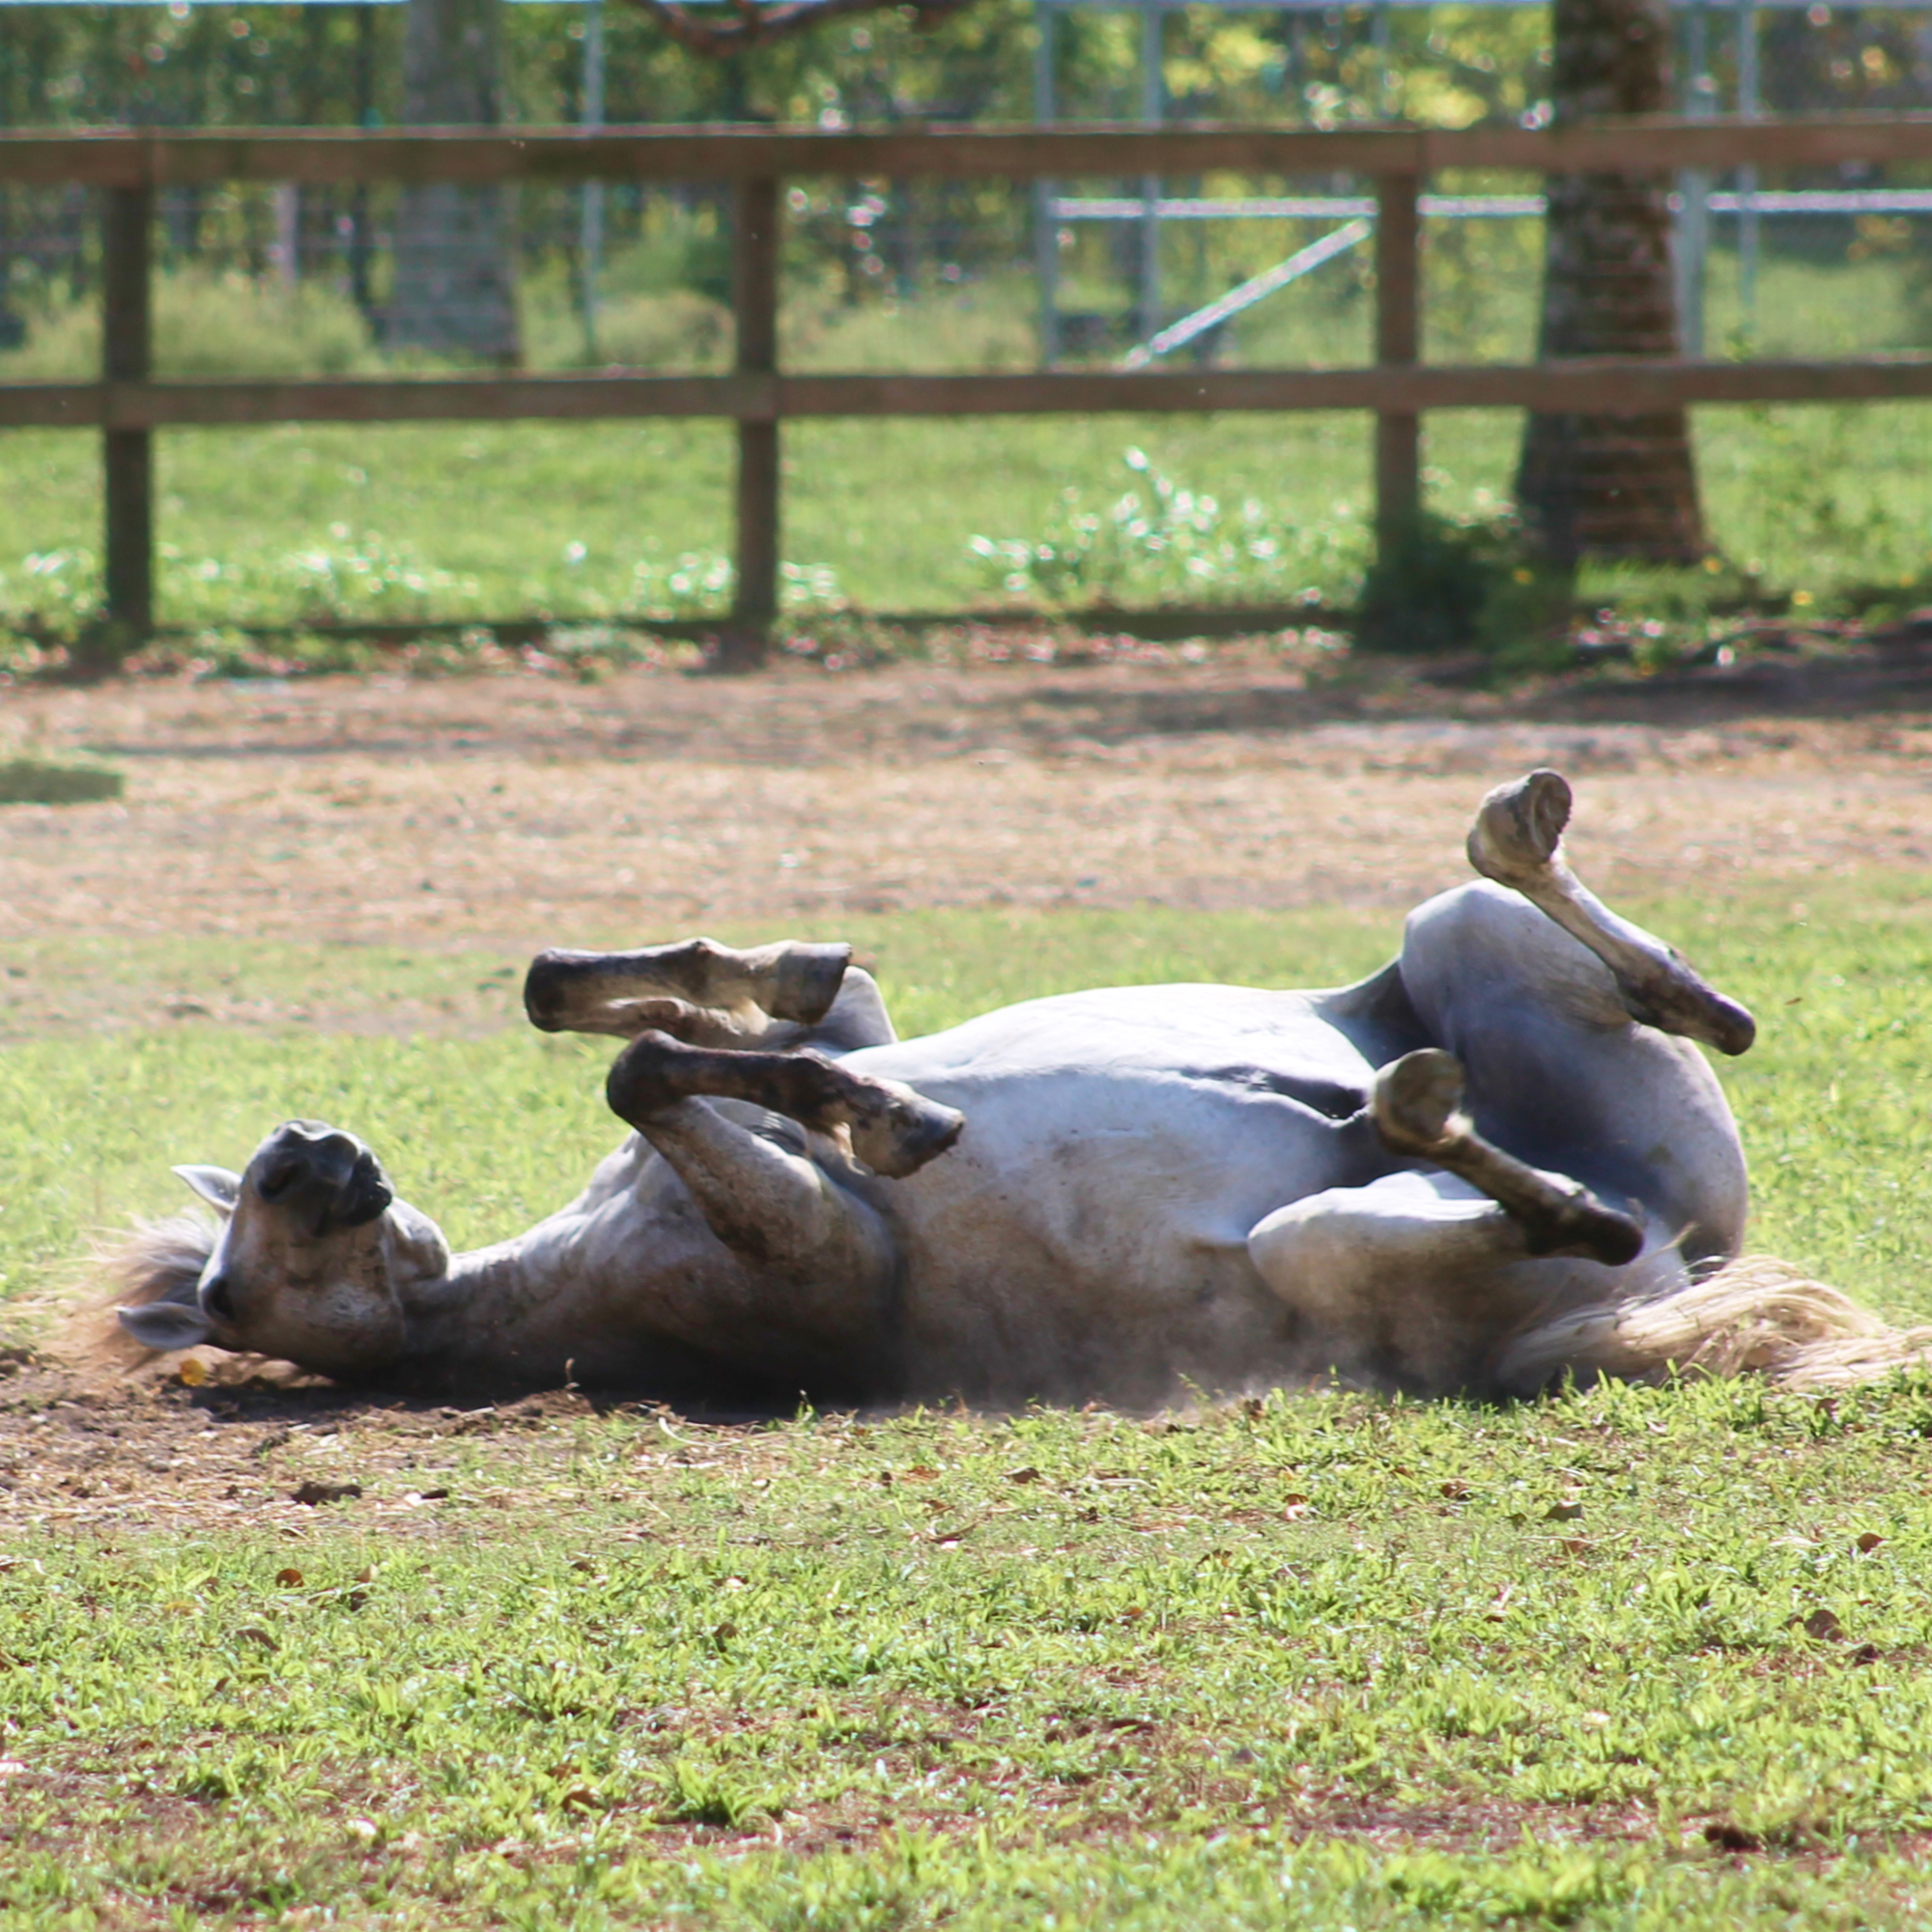 South Florida Society for the Prevention of Cruelty to Animals - Rescues Horses